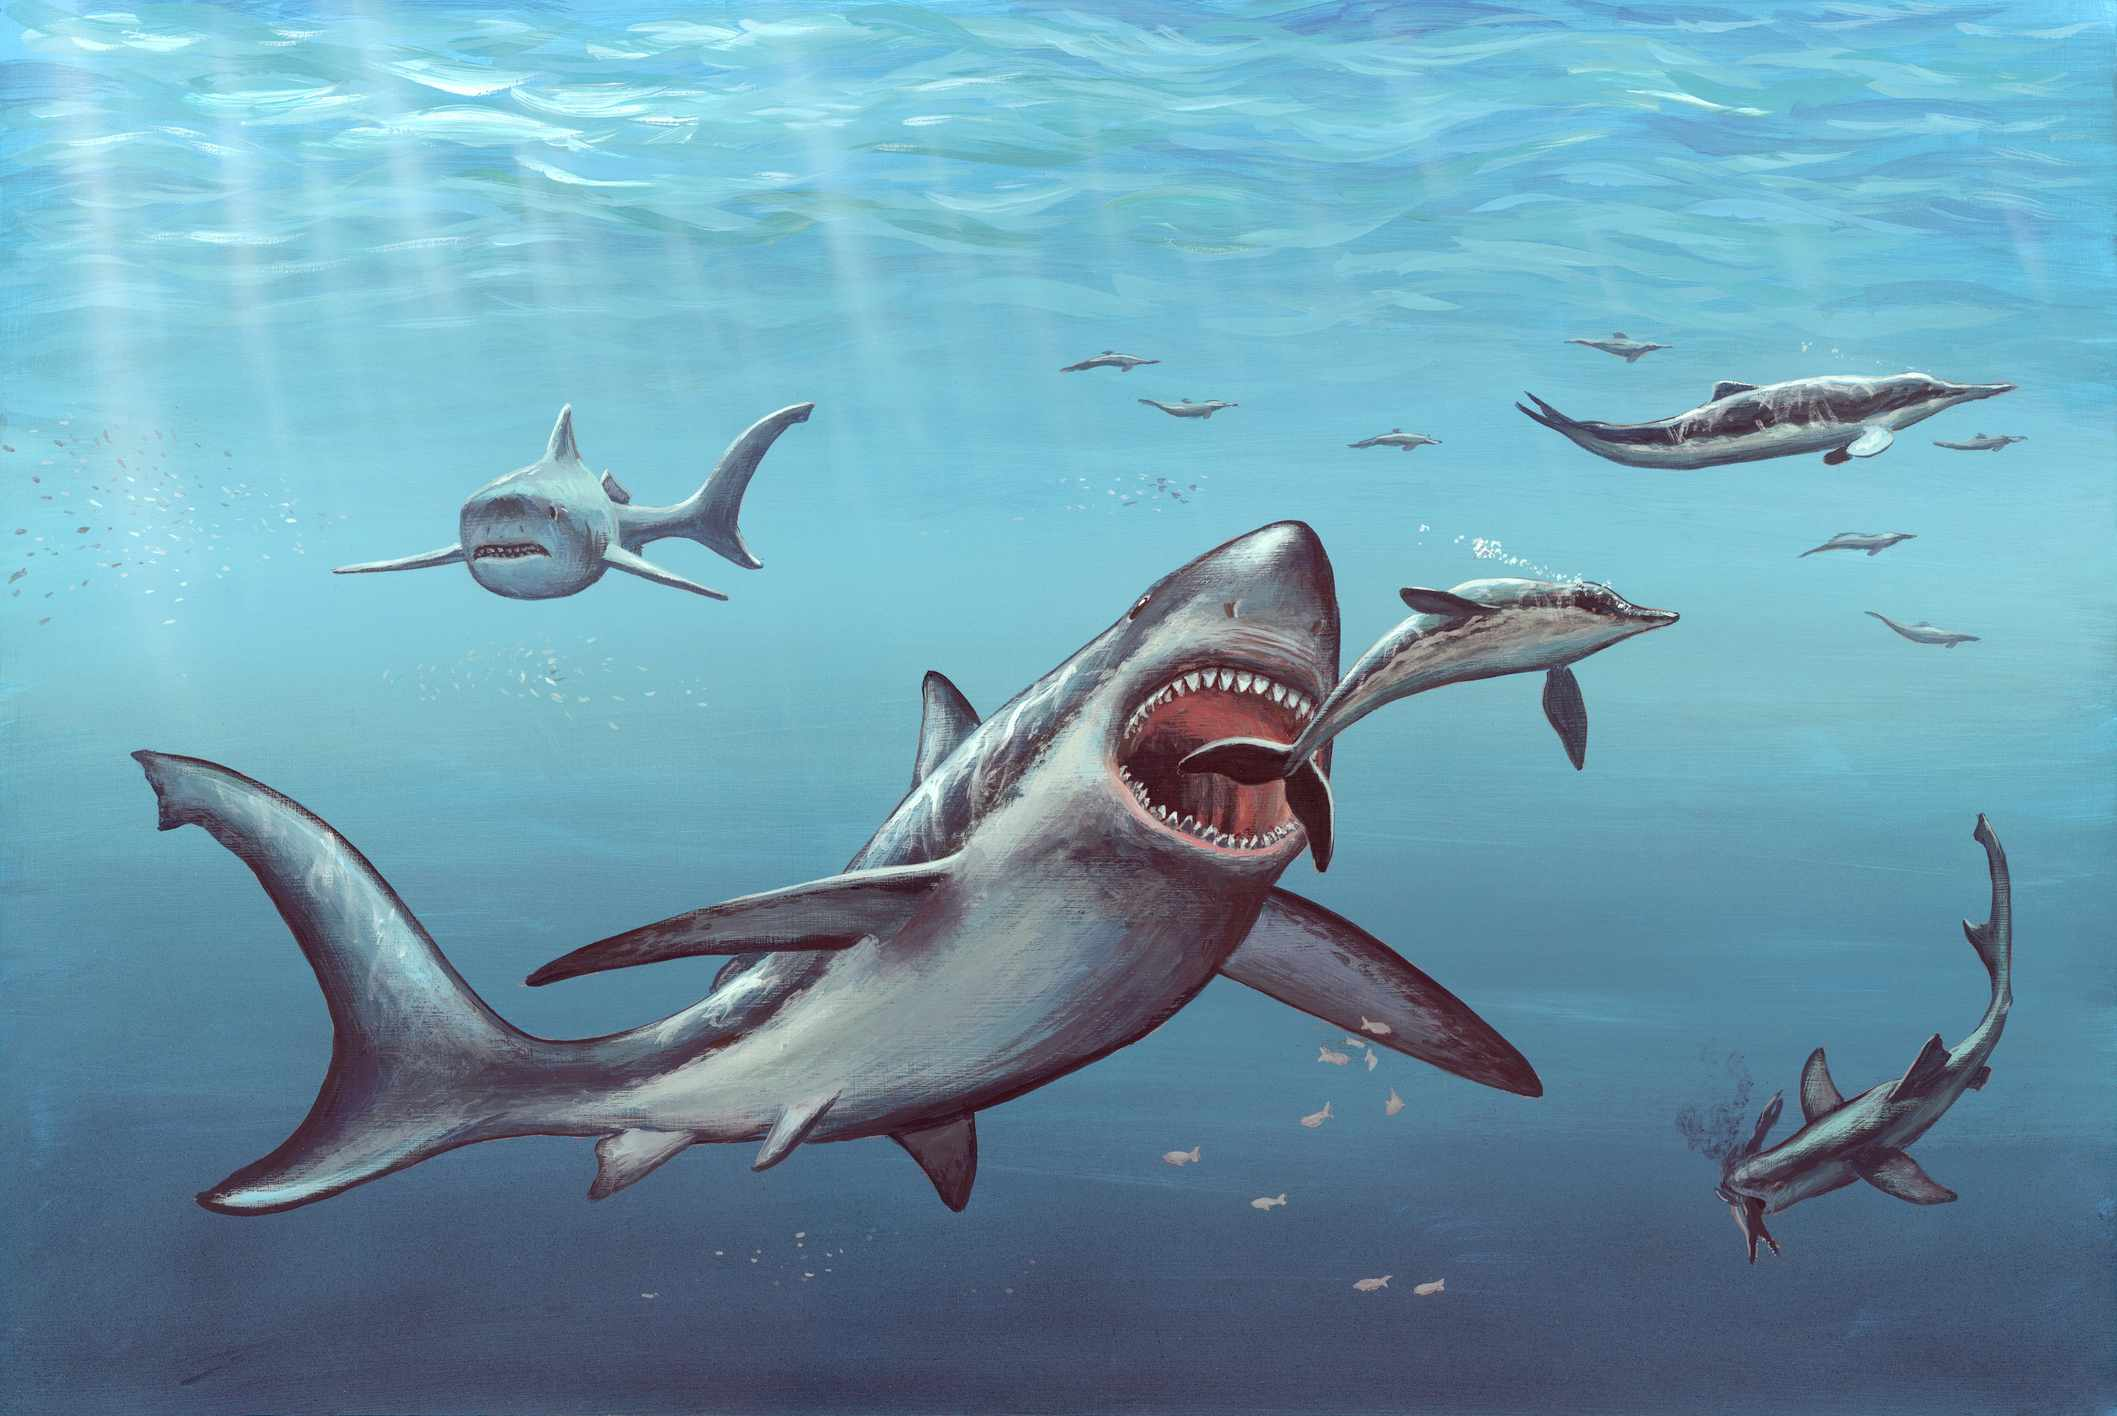 Megalodon Prehistoric Shark Artwork